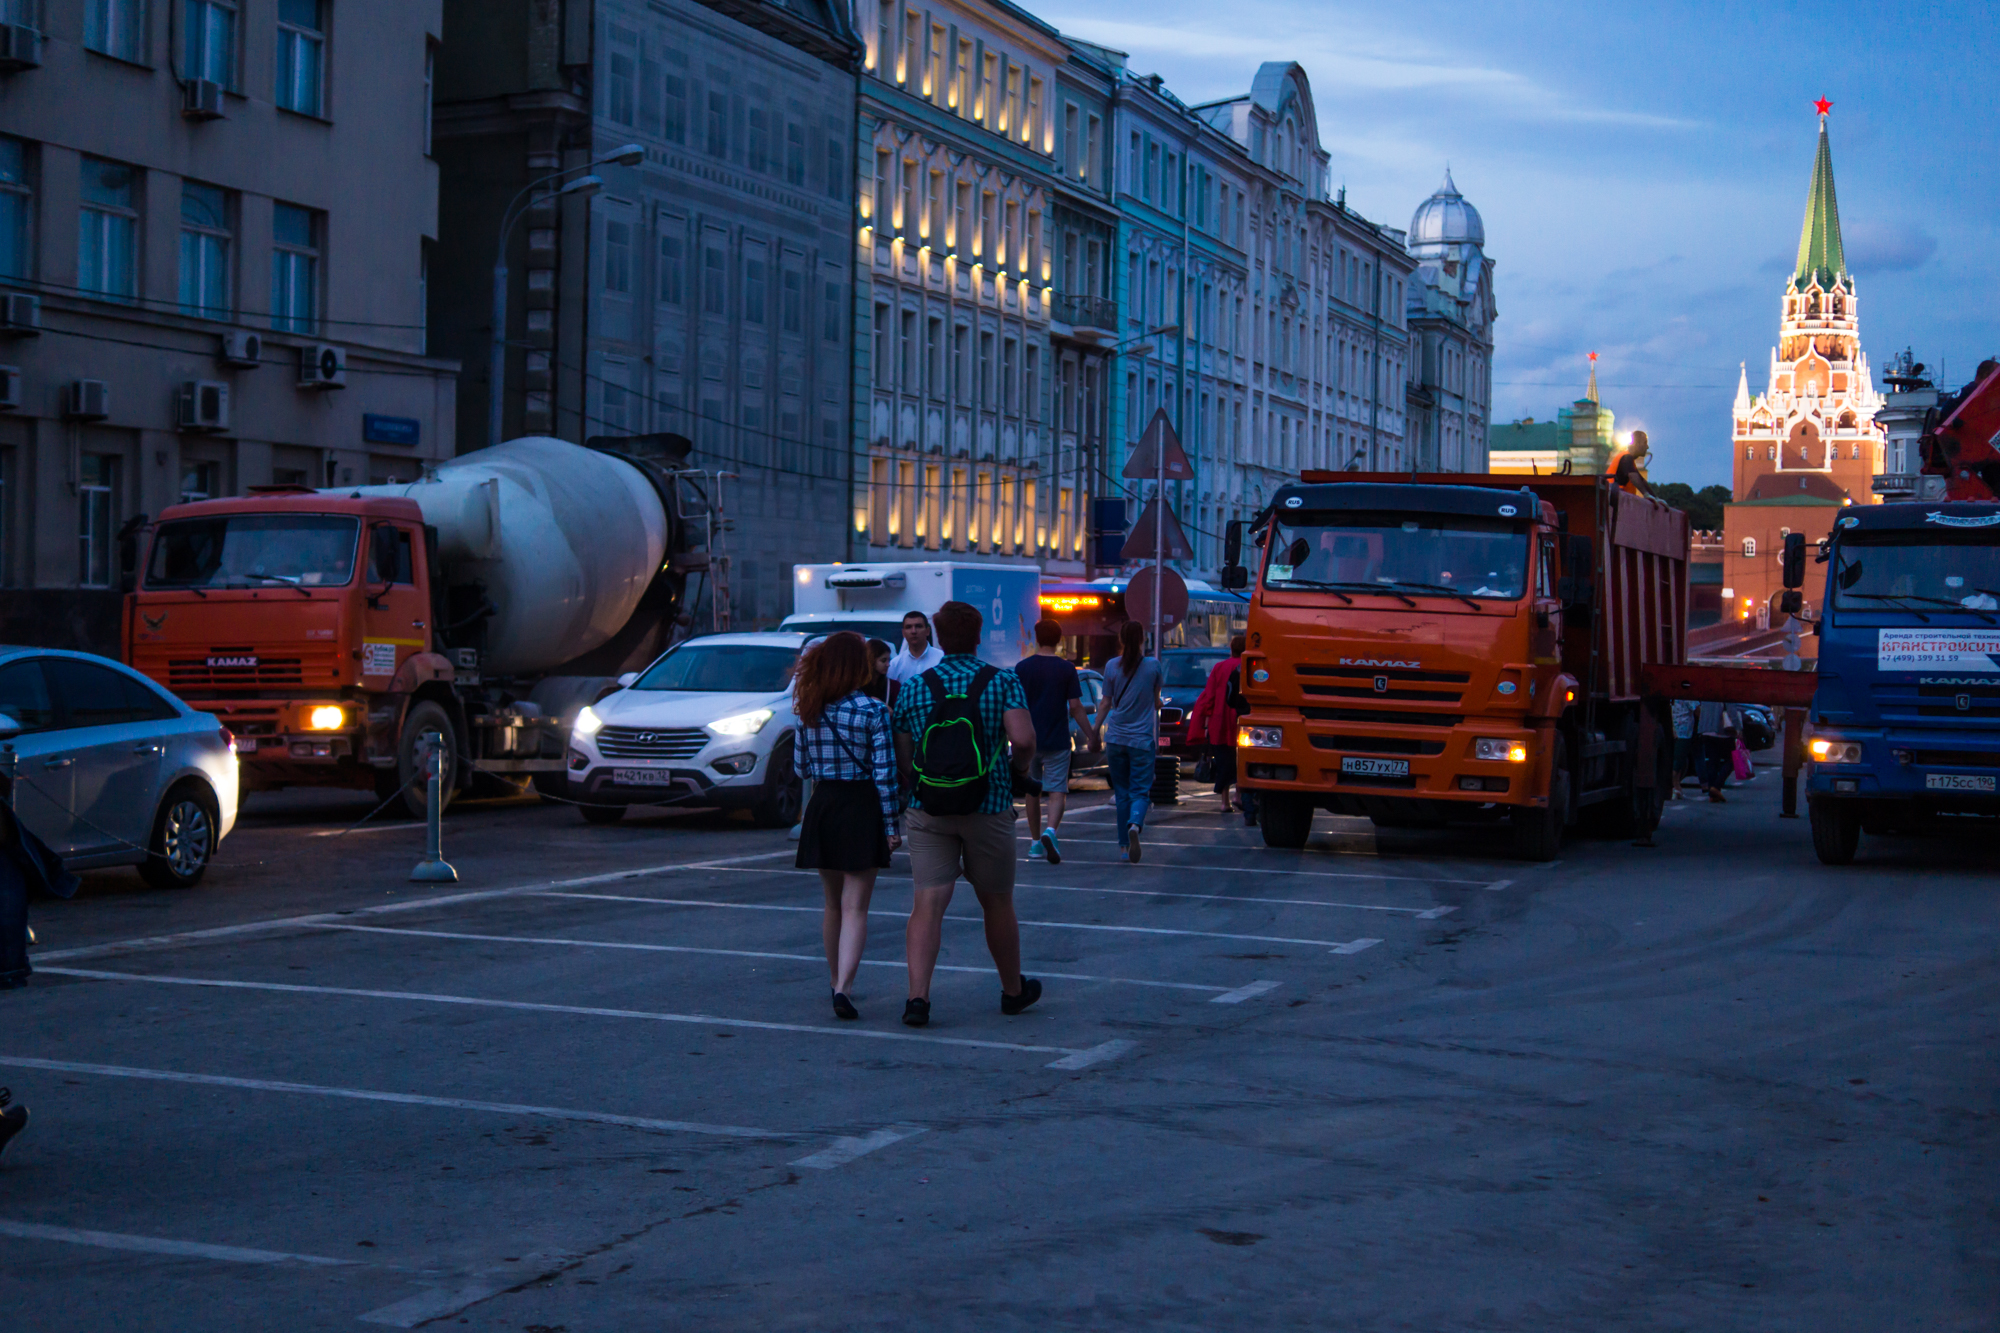 Repairs on the streets of Moscow